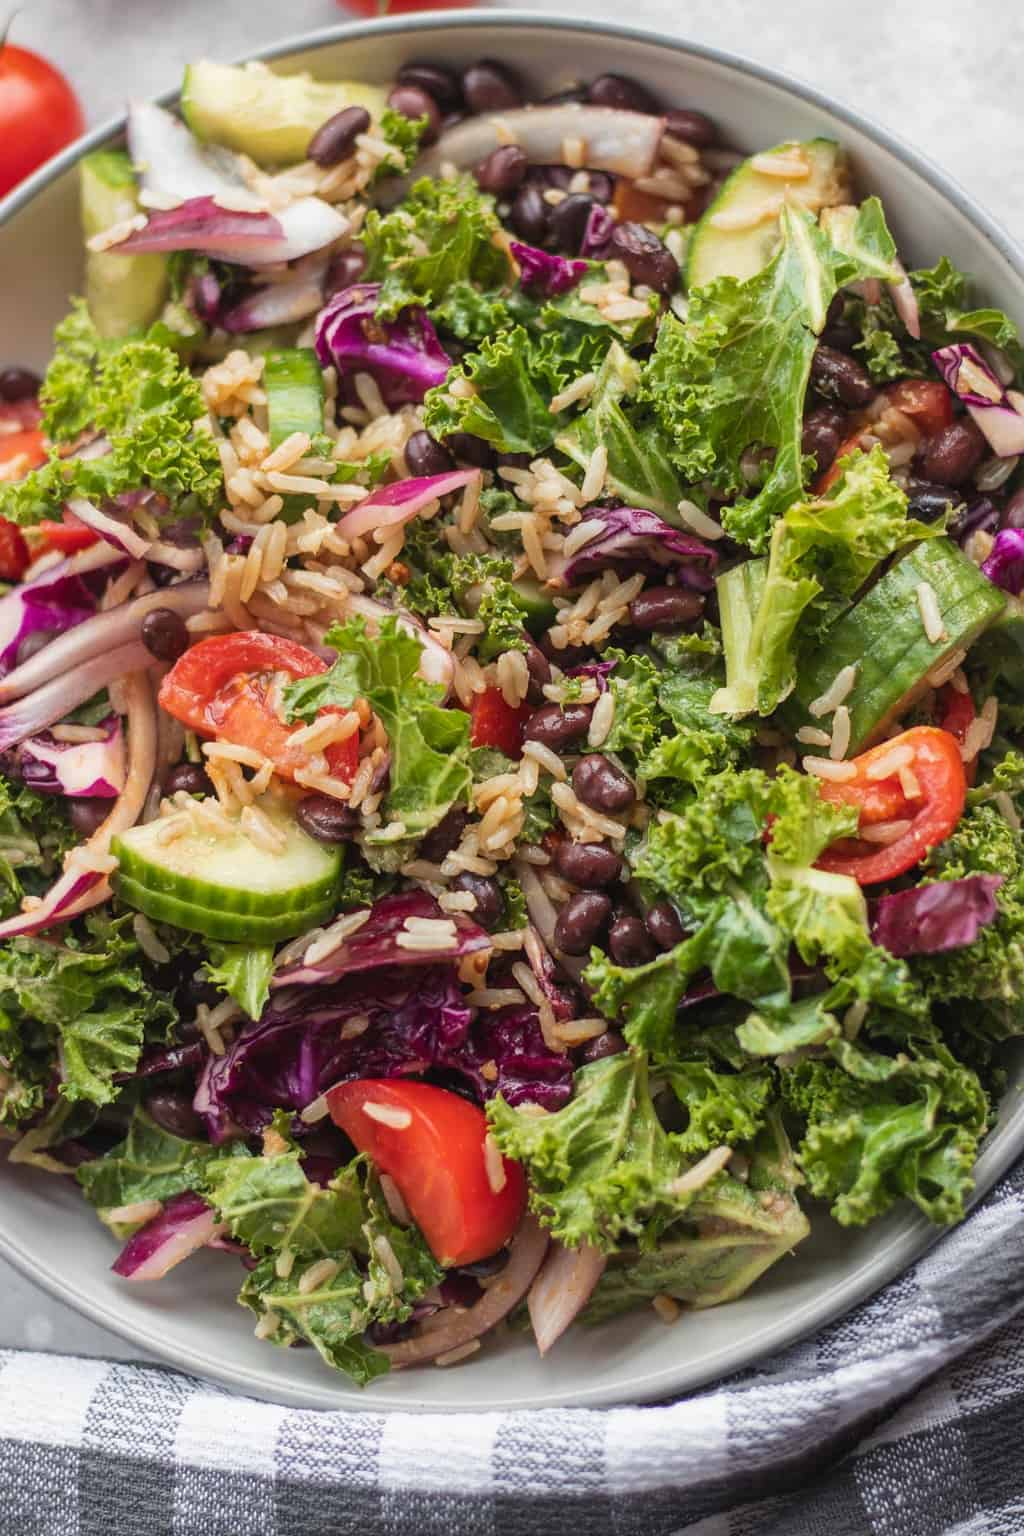 kale salad being served with a checkered cloth